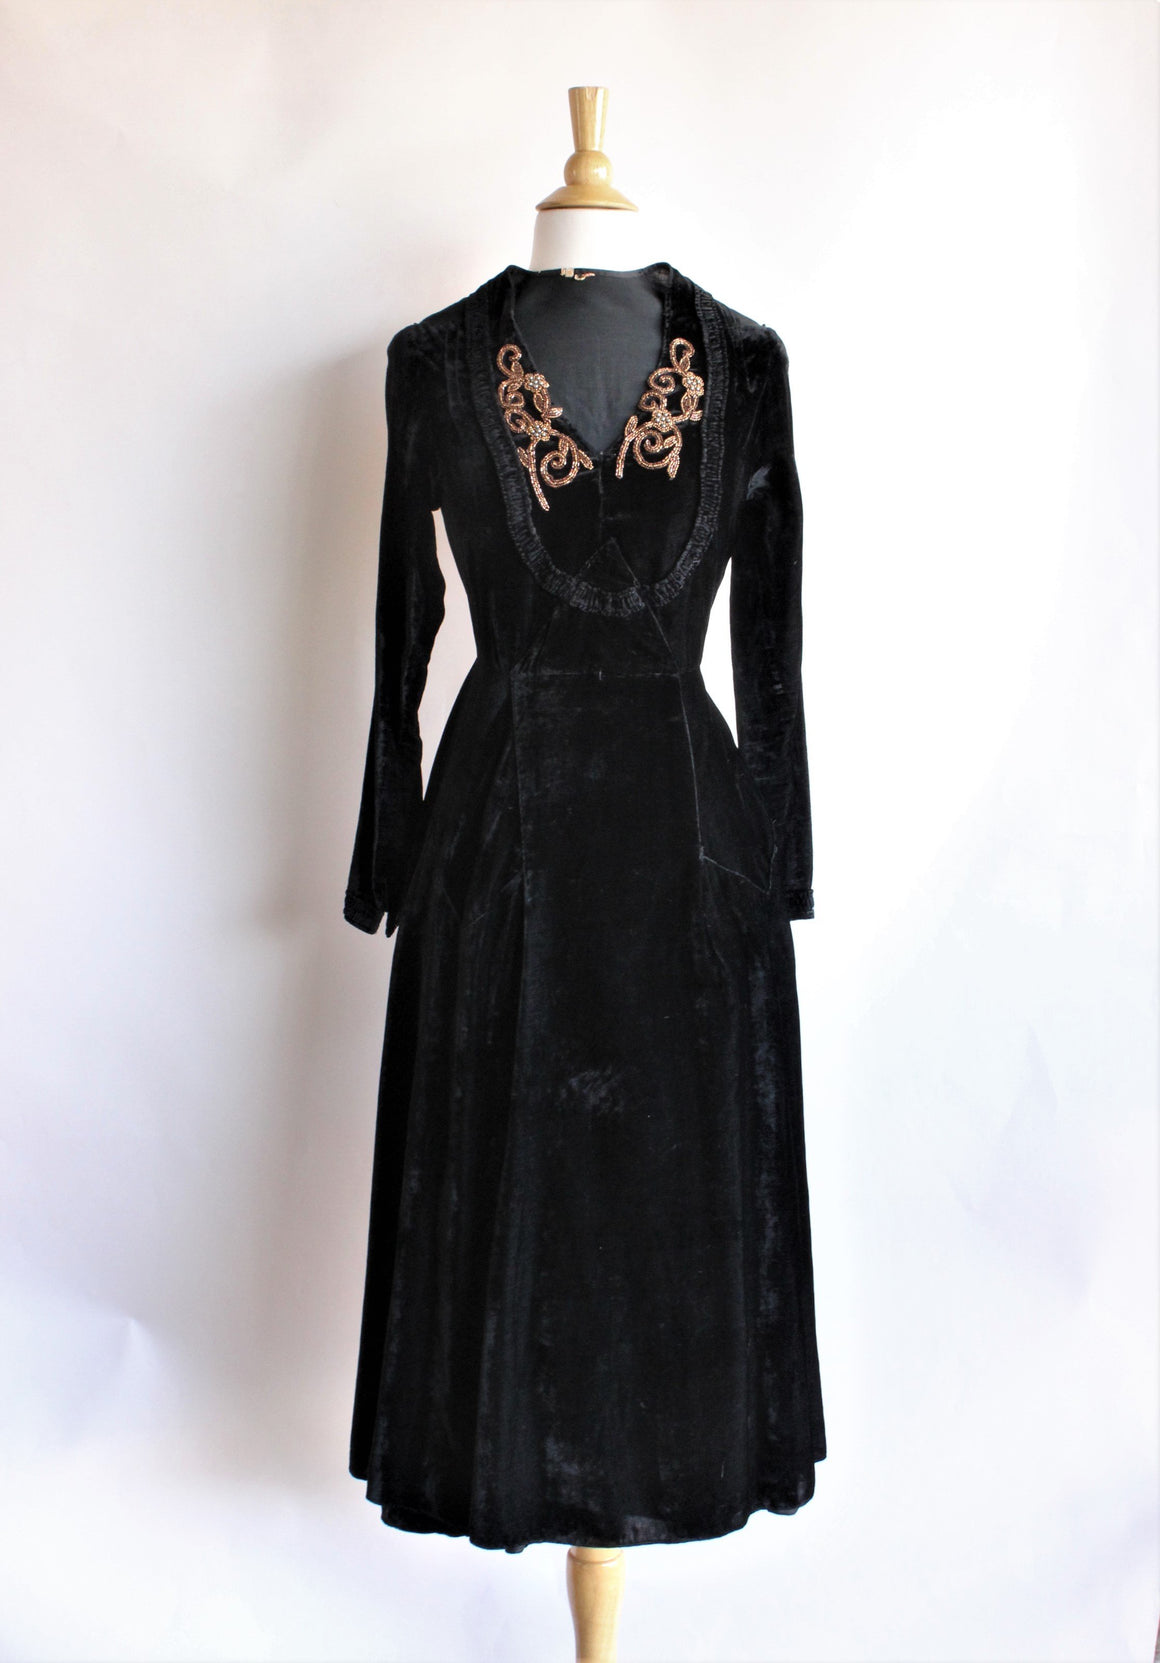 Vintage 1930s Black Silk Velvet Dress by Cash's